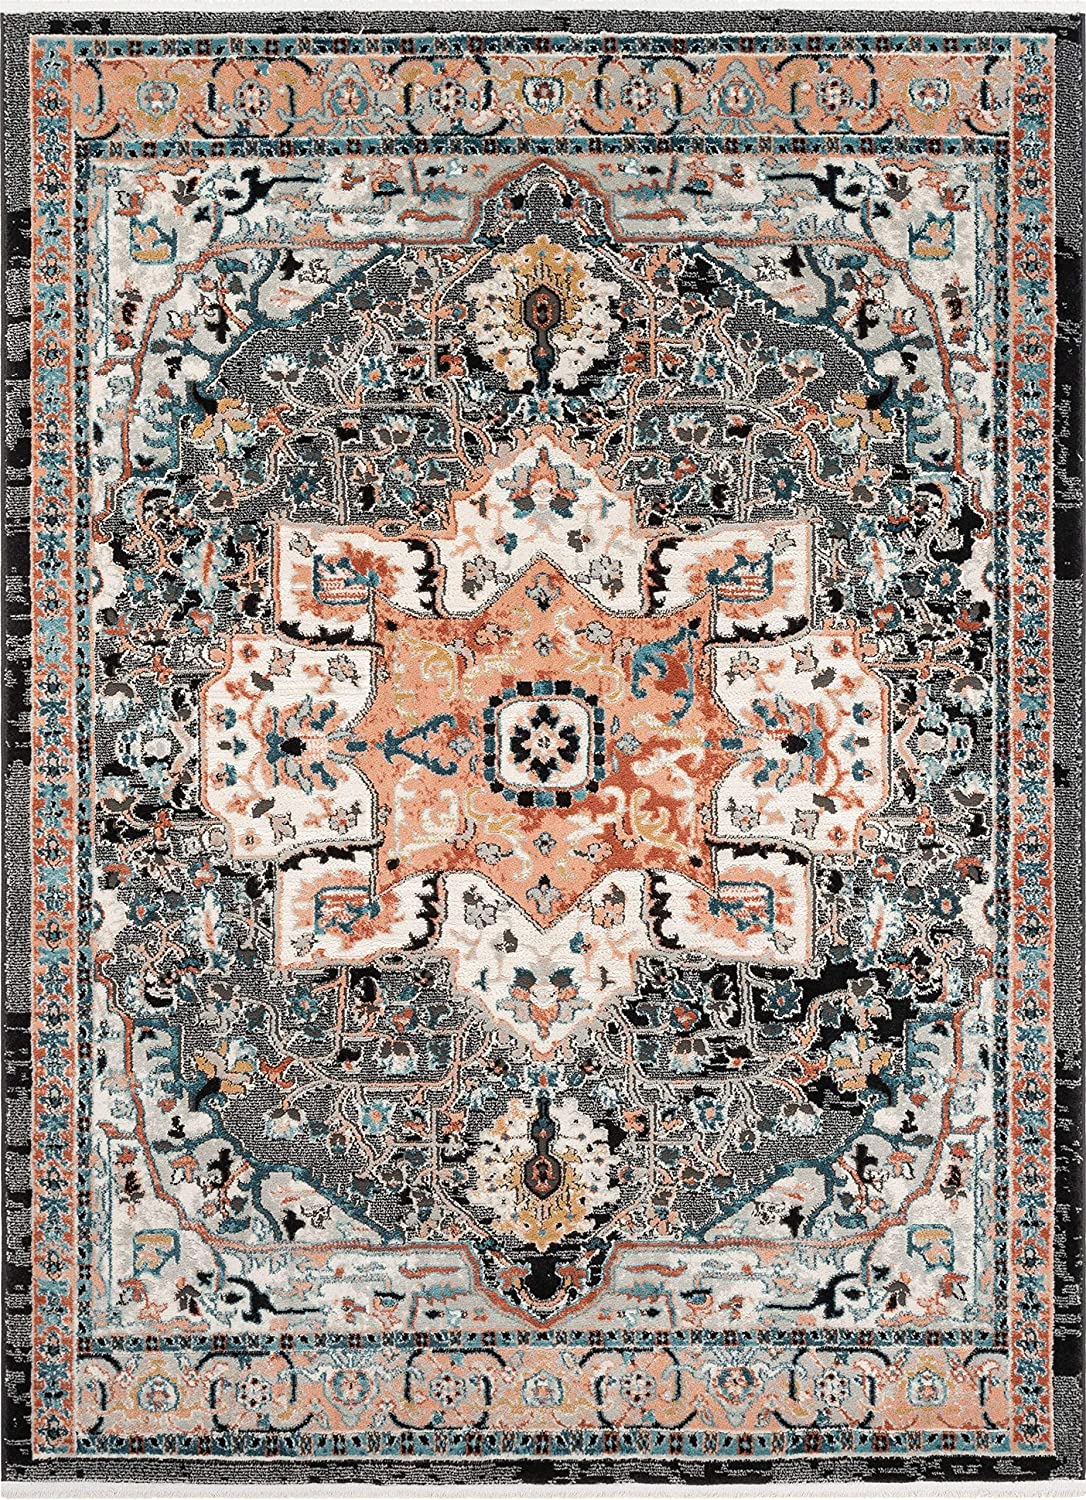 Well Woven Lycie Multi Black Pink Vintage Oriental Distressed Medallion Pattern Boho Area Rug 5x7 5 3 X 7 3 Home Kitchen